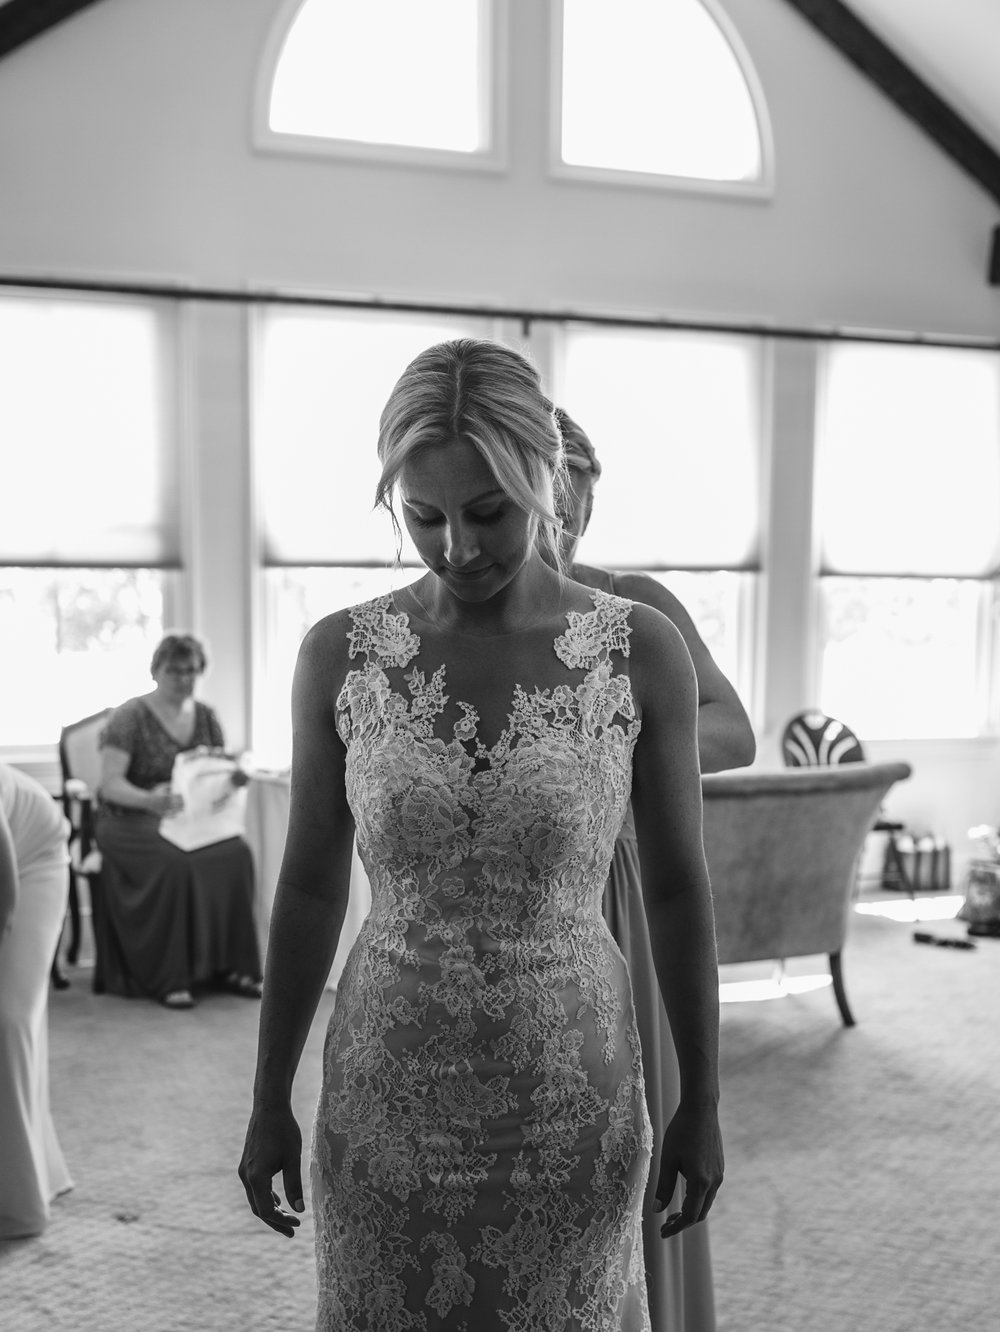 rebeccaburtphotography.walkersoverlook.frederickmarylandweddingphotographer-14.JPG